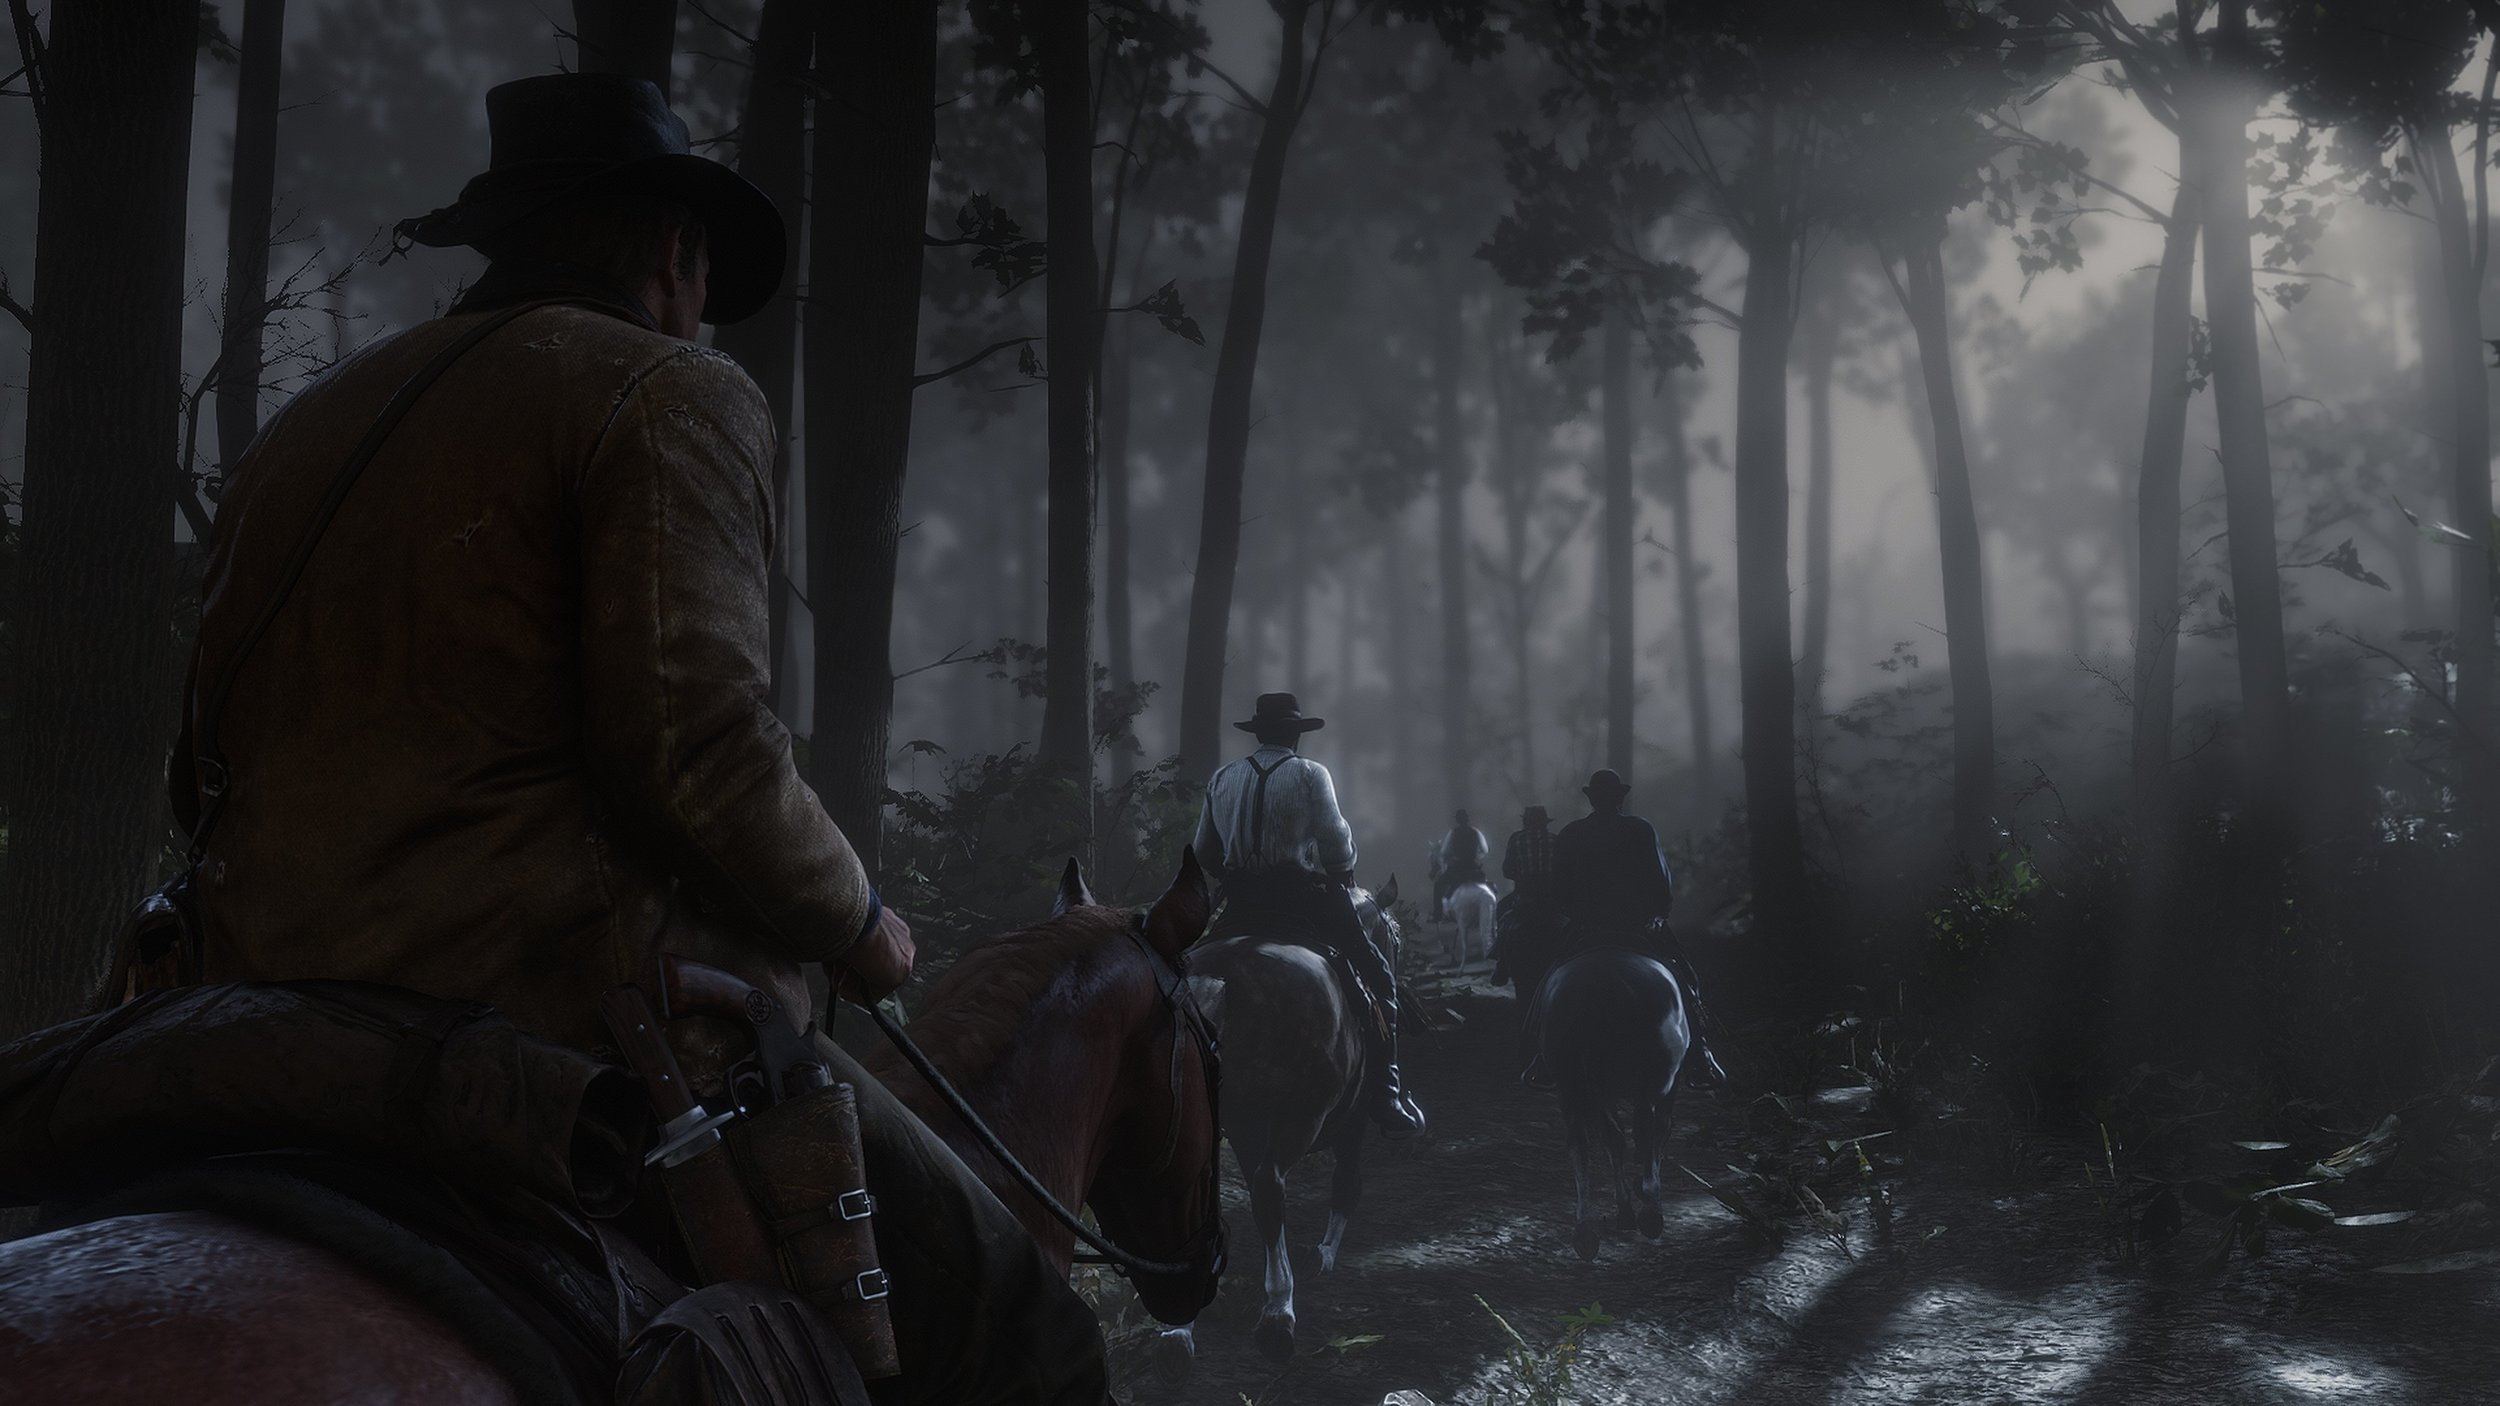 Red Dead Redemption: Overtime - Rockstar Games have finally made the right decision around employee overtime. Call of Duty is doing DLC right by giving back to the troops that fight for our freedom. The Devil May Cry developers have made a ridiculous special edition and Intellivision is back! All of this and more on episode 230 of the GameZilla Podcast.